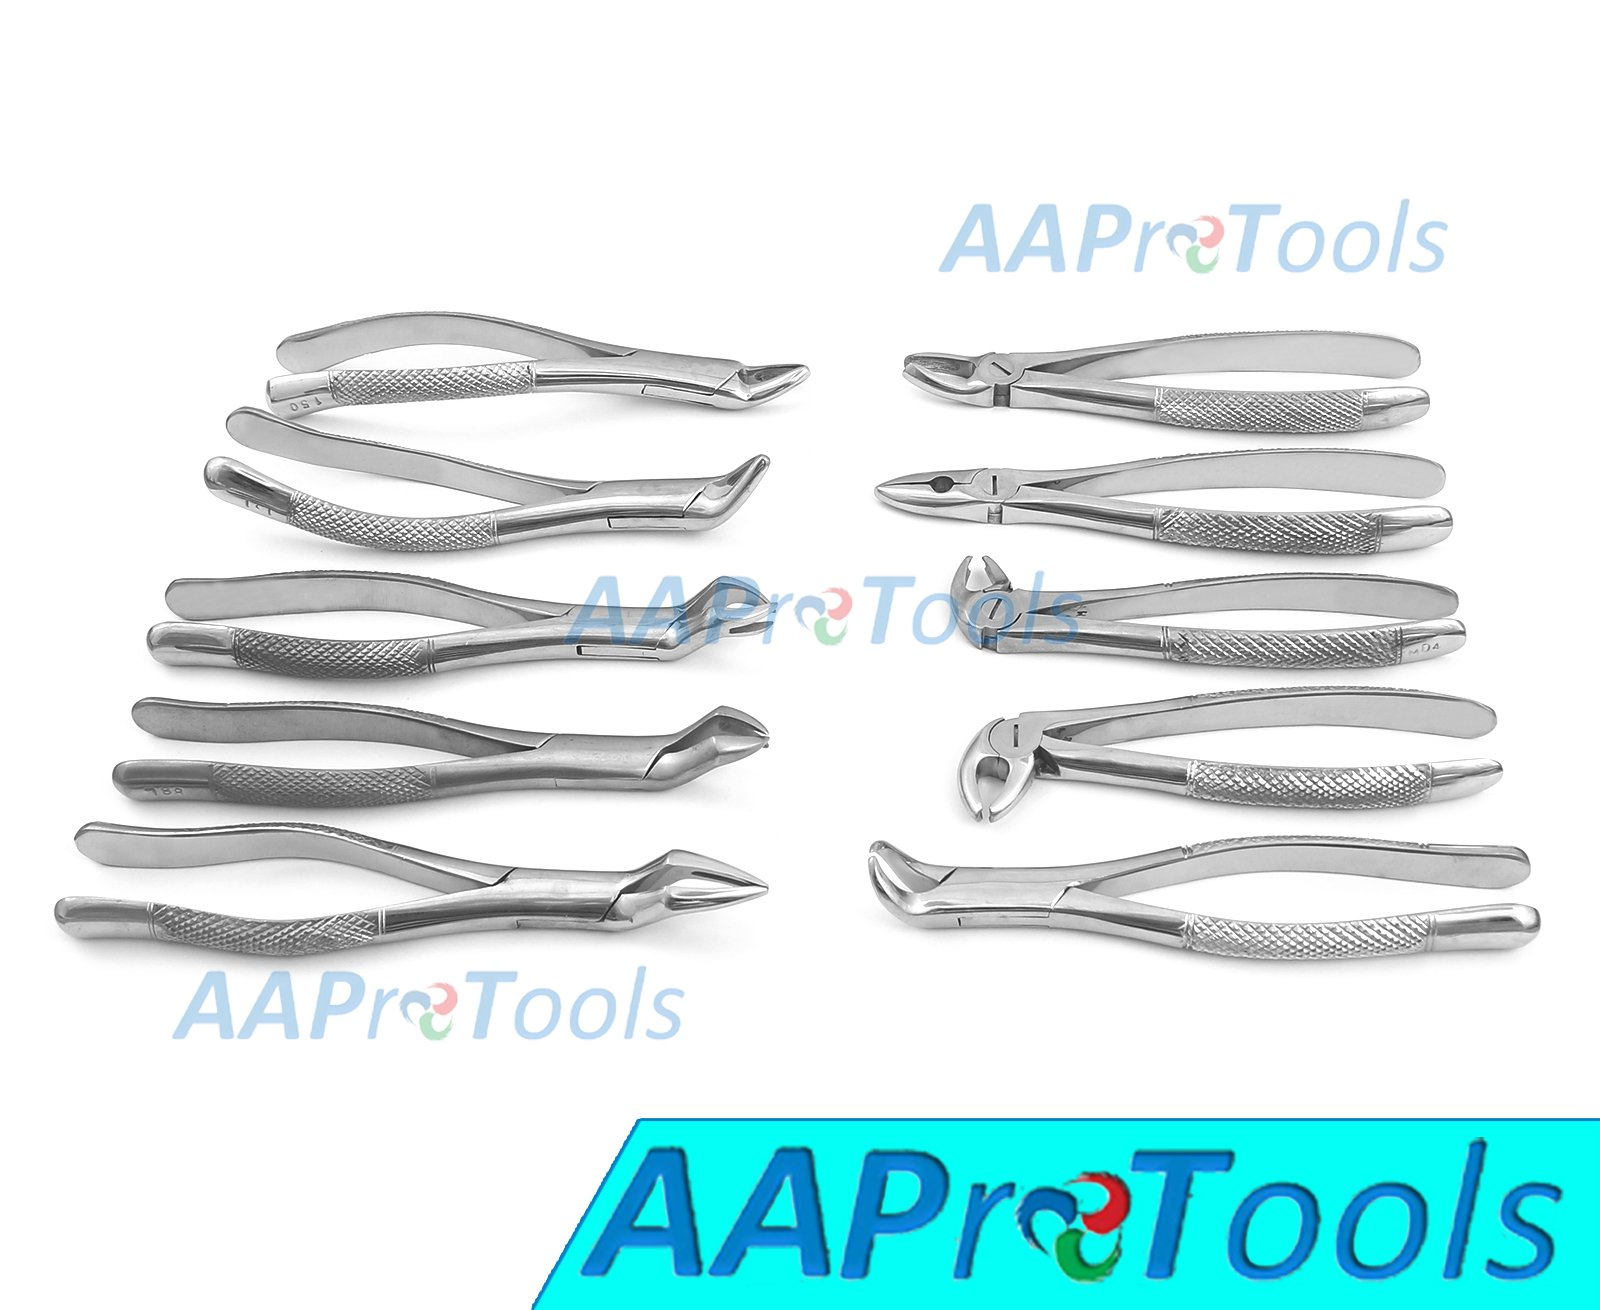 AAPROTOOLS 10 PCS DENTAL EXTRACTING FORCEPS 23, 65, 88L, 88R, 150, 151, MD1, MD2, MD3, MD4 LOWER UPPER FULL SETS A+ QUALITY